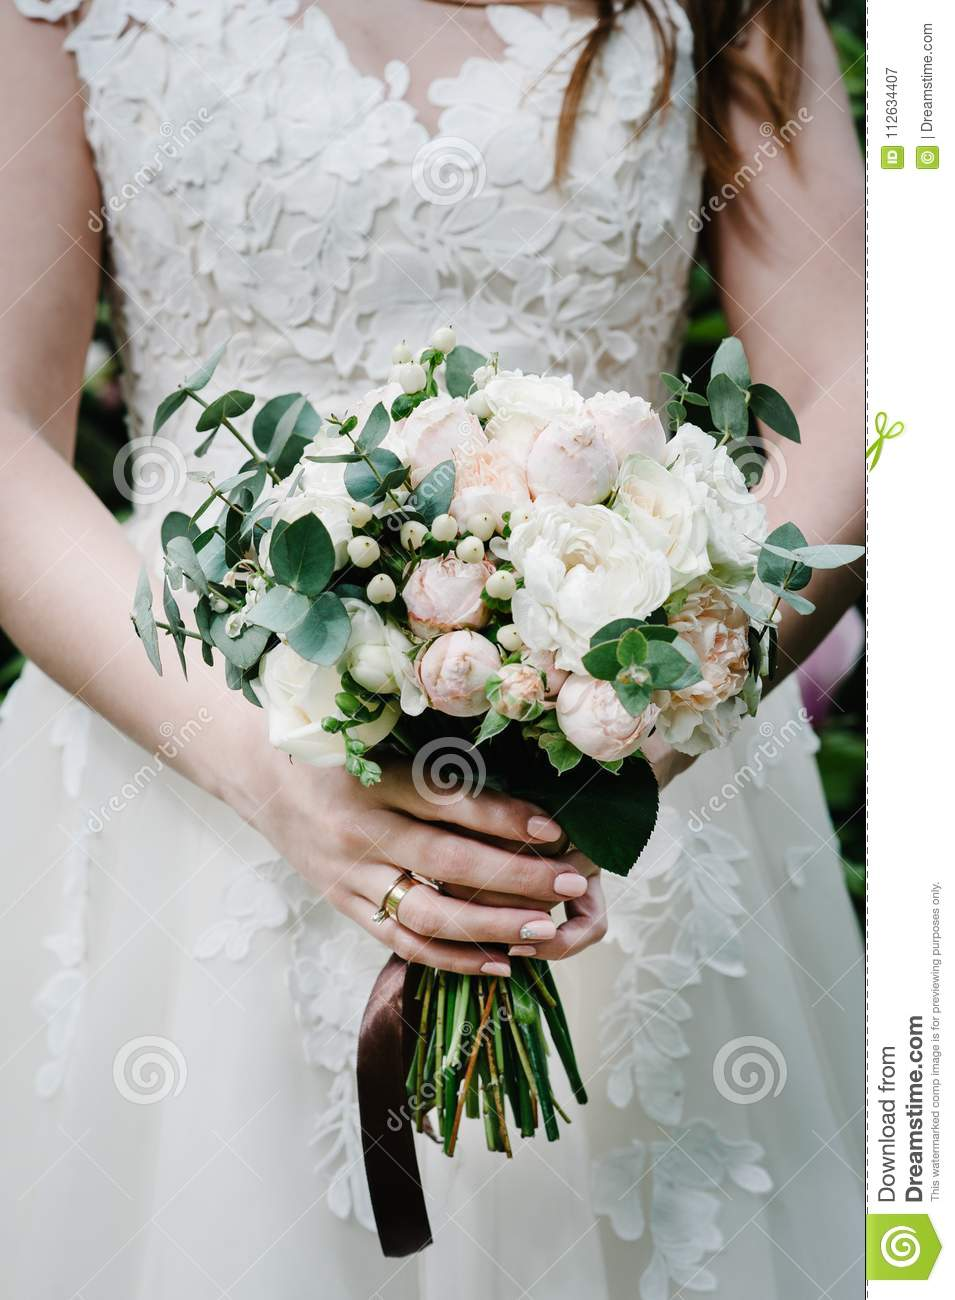 The Bride Holding A Beautiful Wedding Bouquet Of Pastel Pink